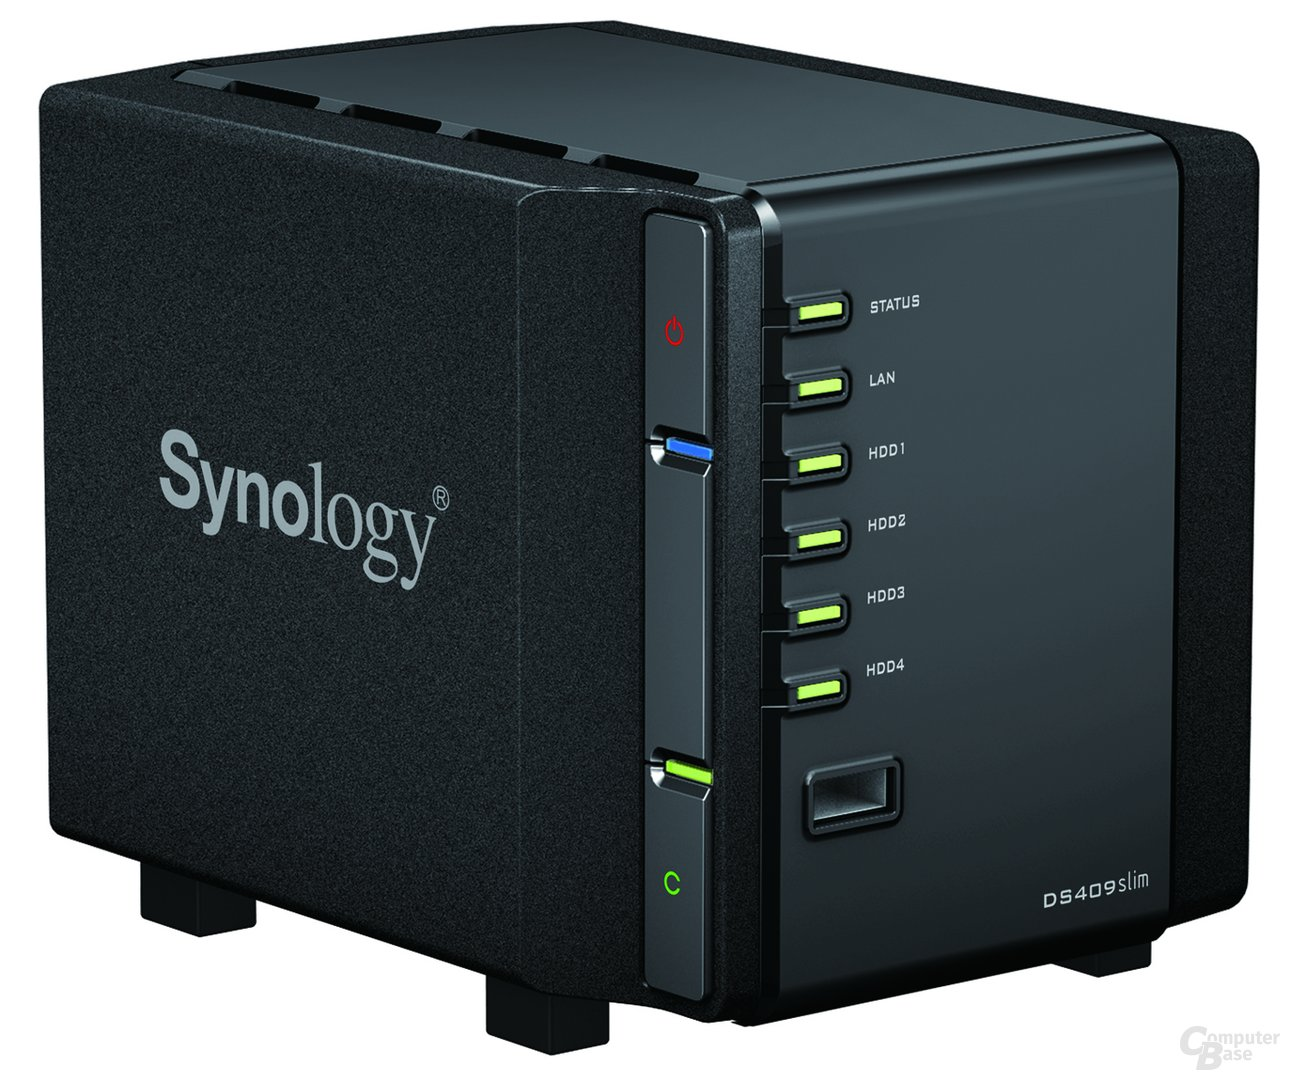 Synology DS409slim